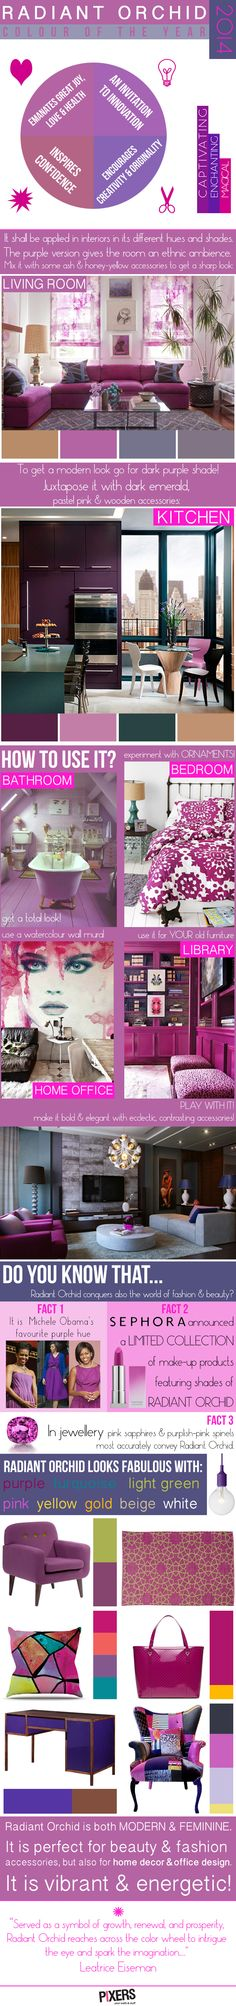 Radiant Orchid as a Trend Colour in 2014.   This colur is both modern & feminine. It's also vibrant & energetic! Look how to use it in your interior!  infographics by PIXERS